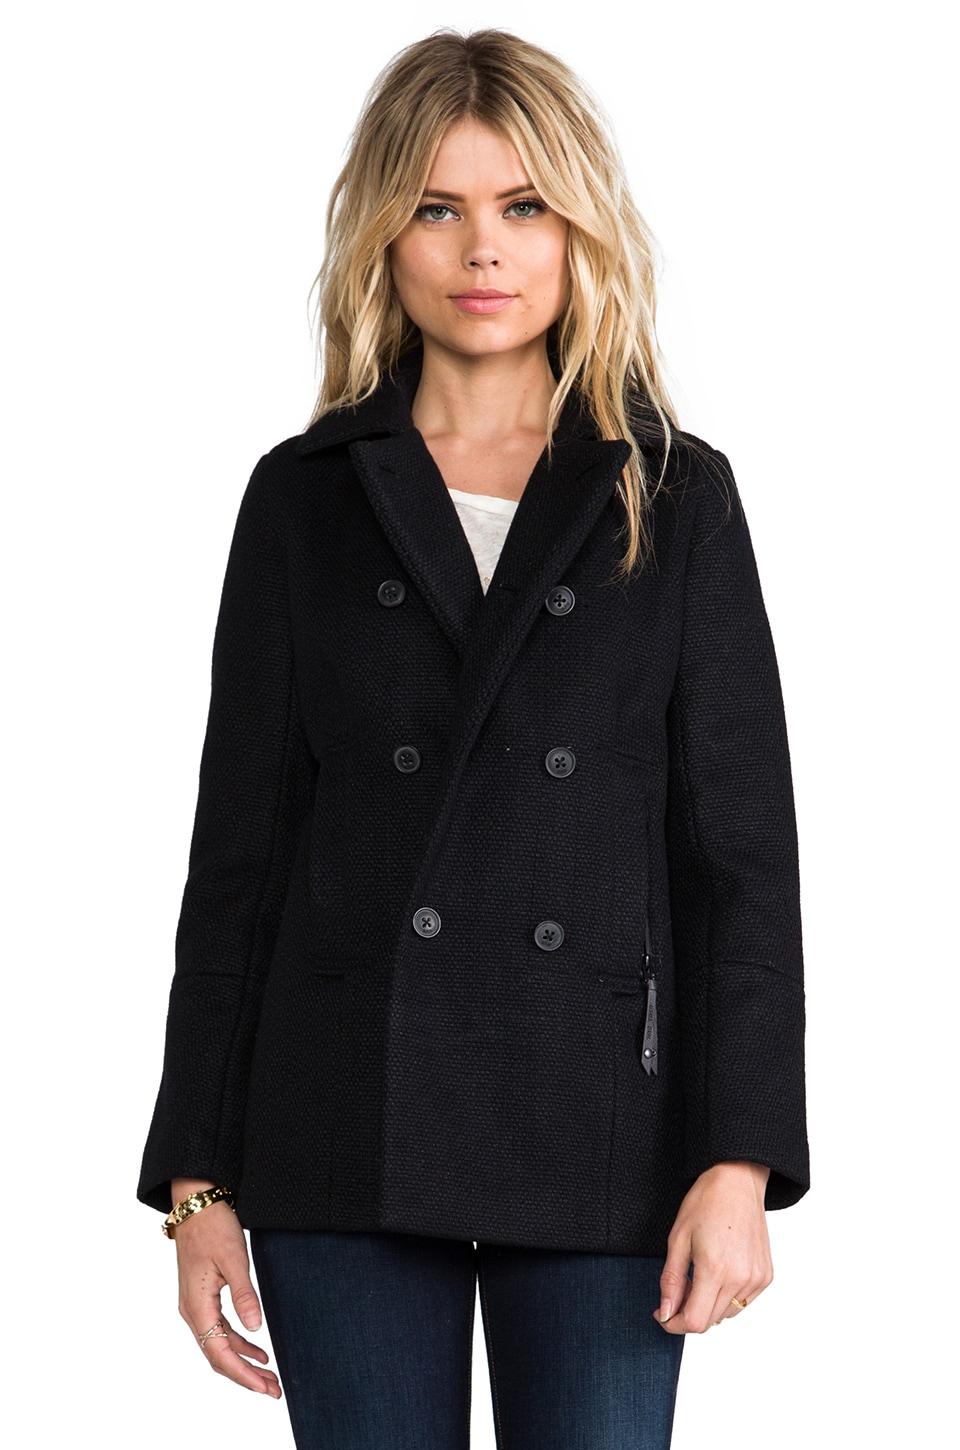 G-Star CLASSIC WOOL PEACOAT in Black